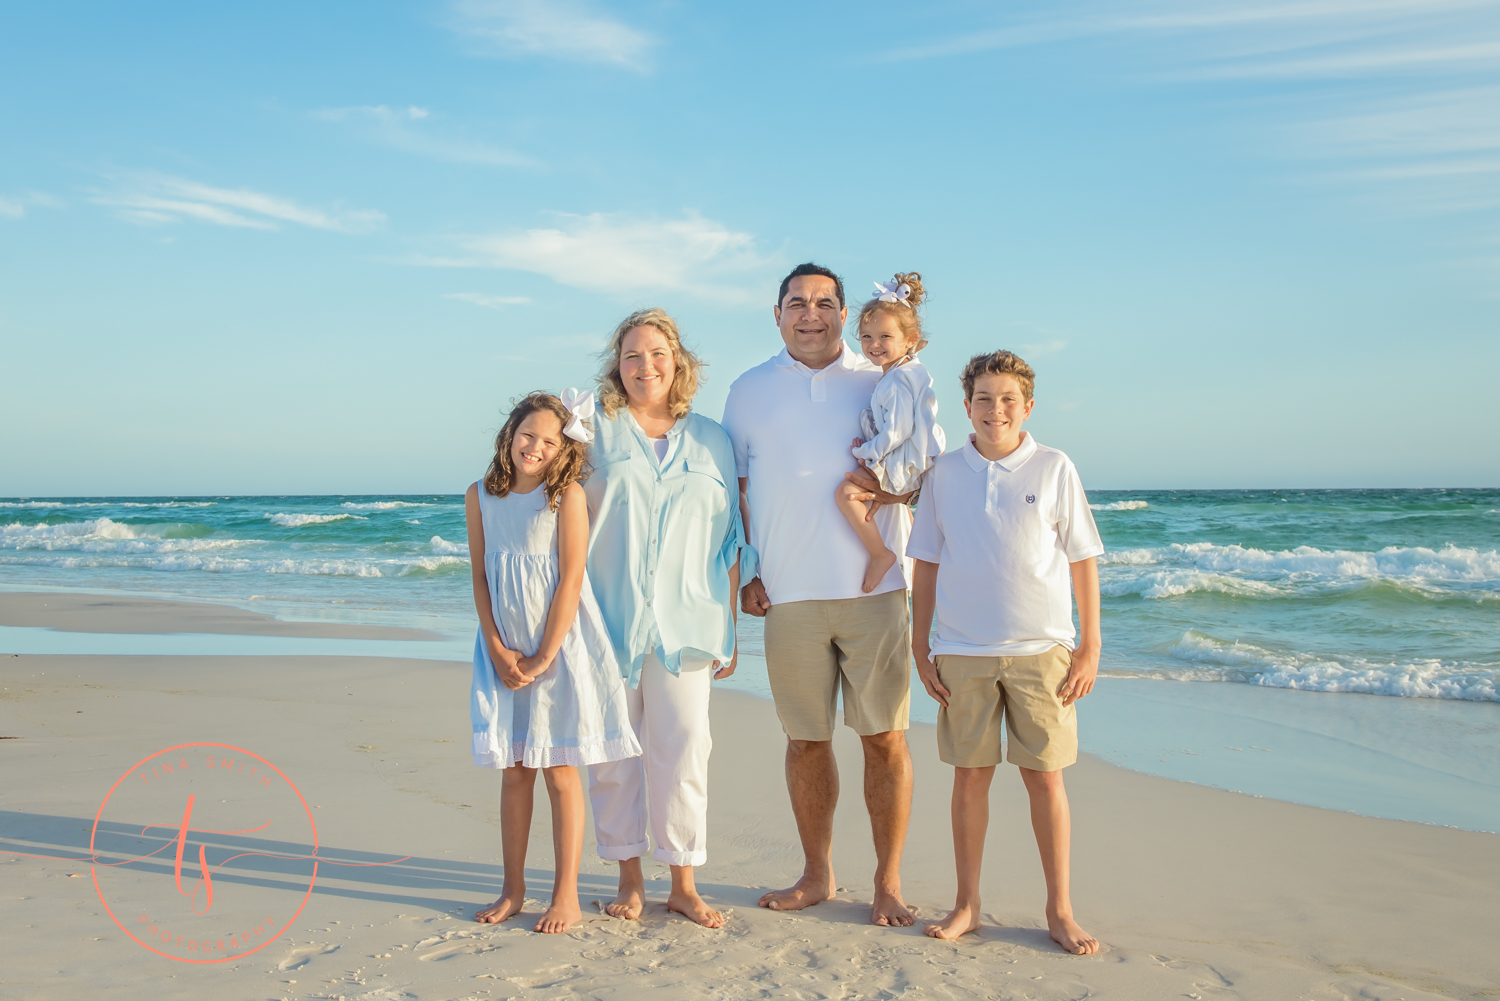 family posing on watersound beach smiling for photographer